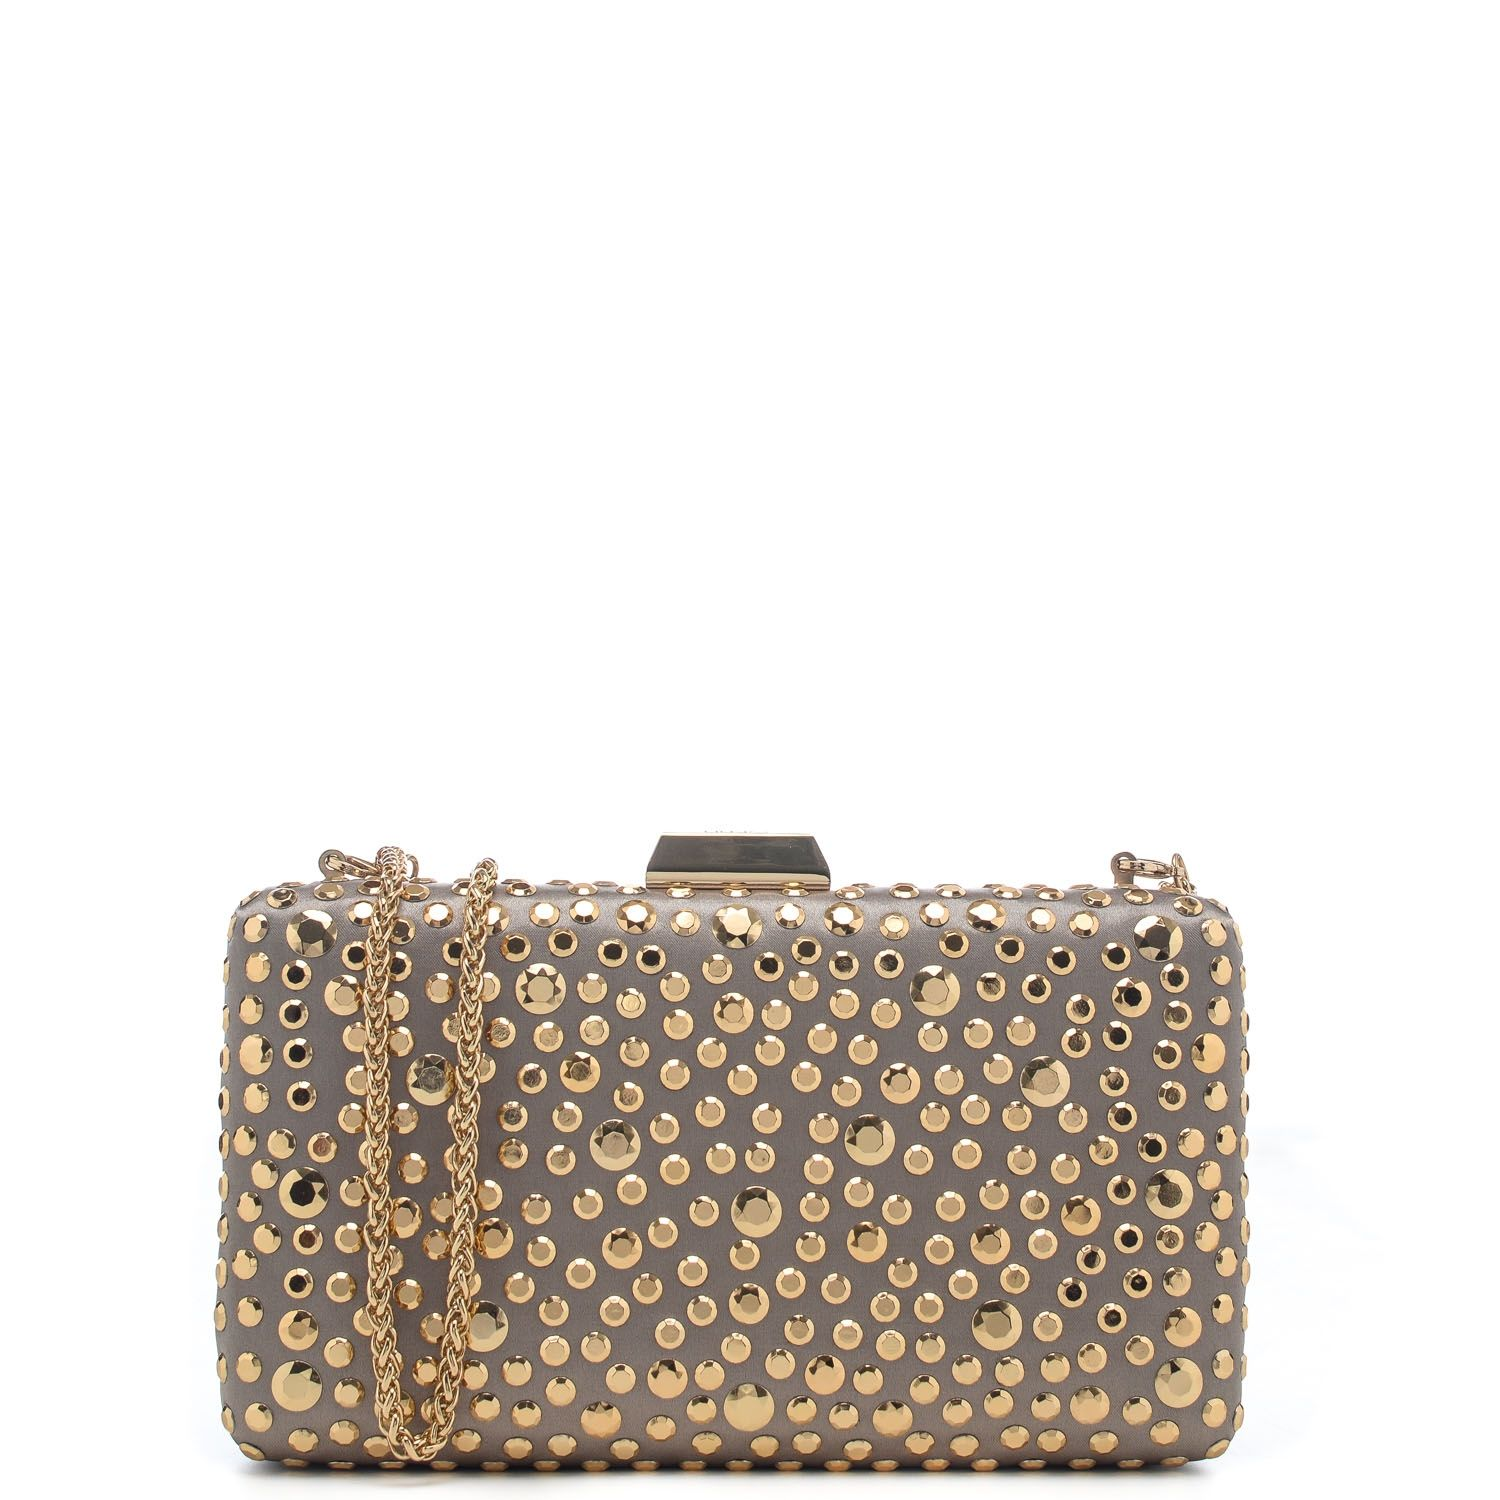 Clutch in raso con borchie tonde applicate